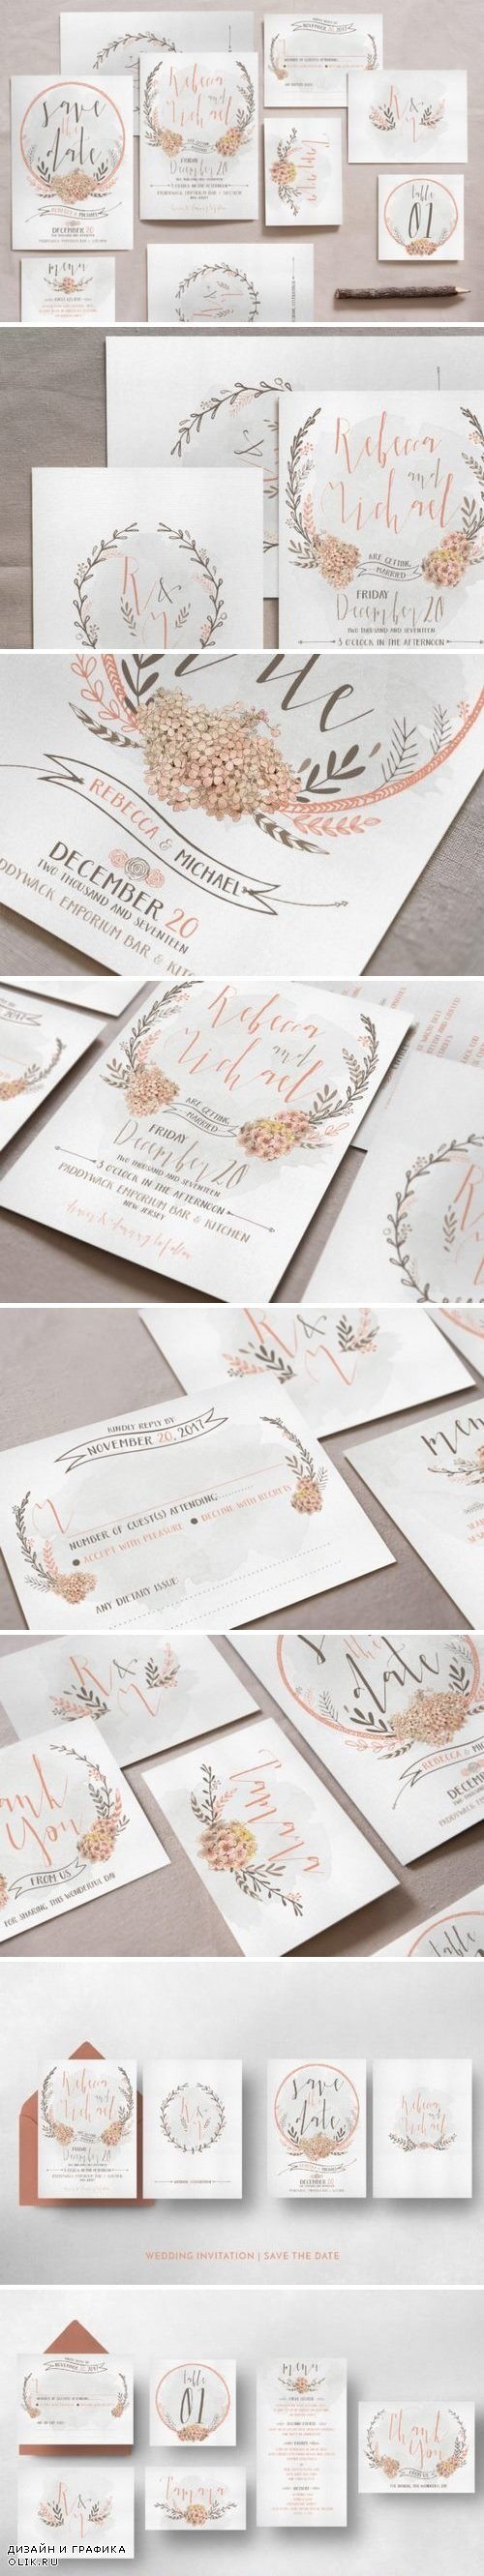 Wreath & Flower Wedding Invitation Suite 799852